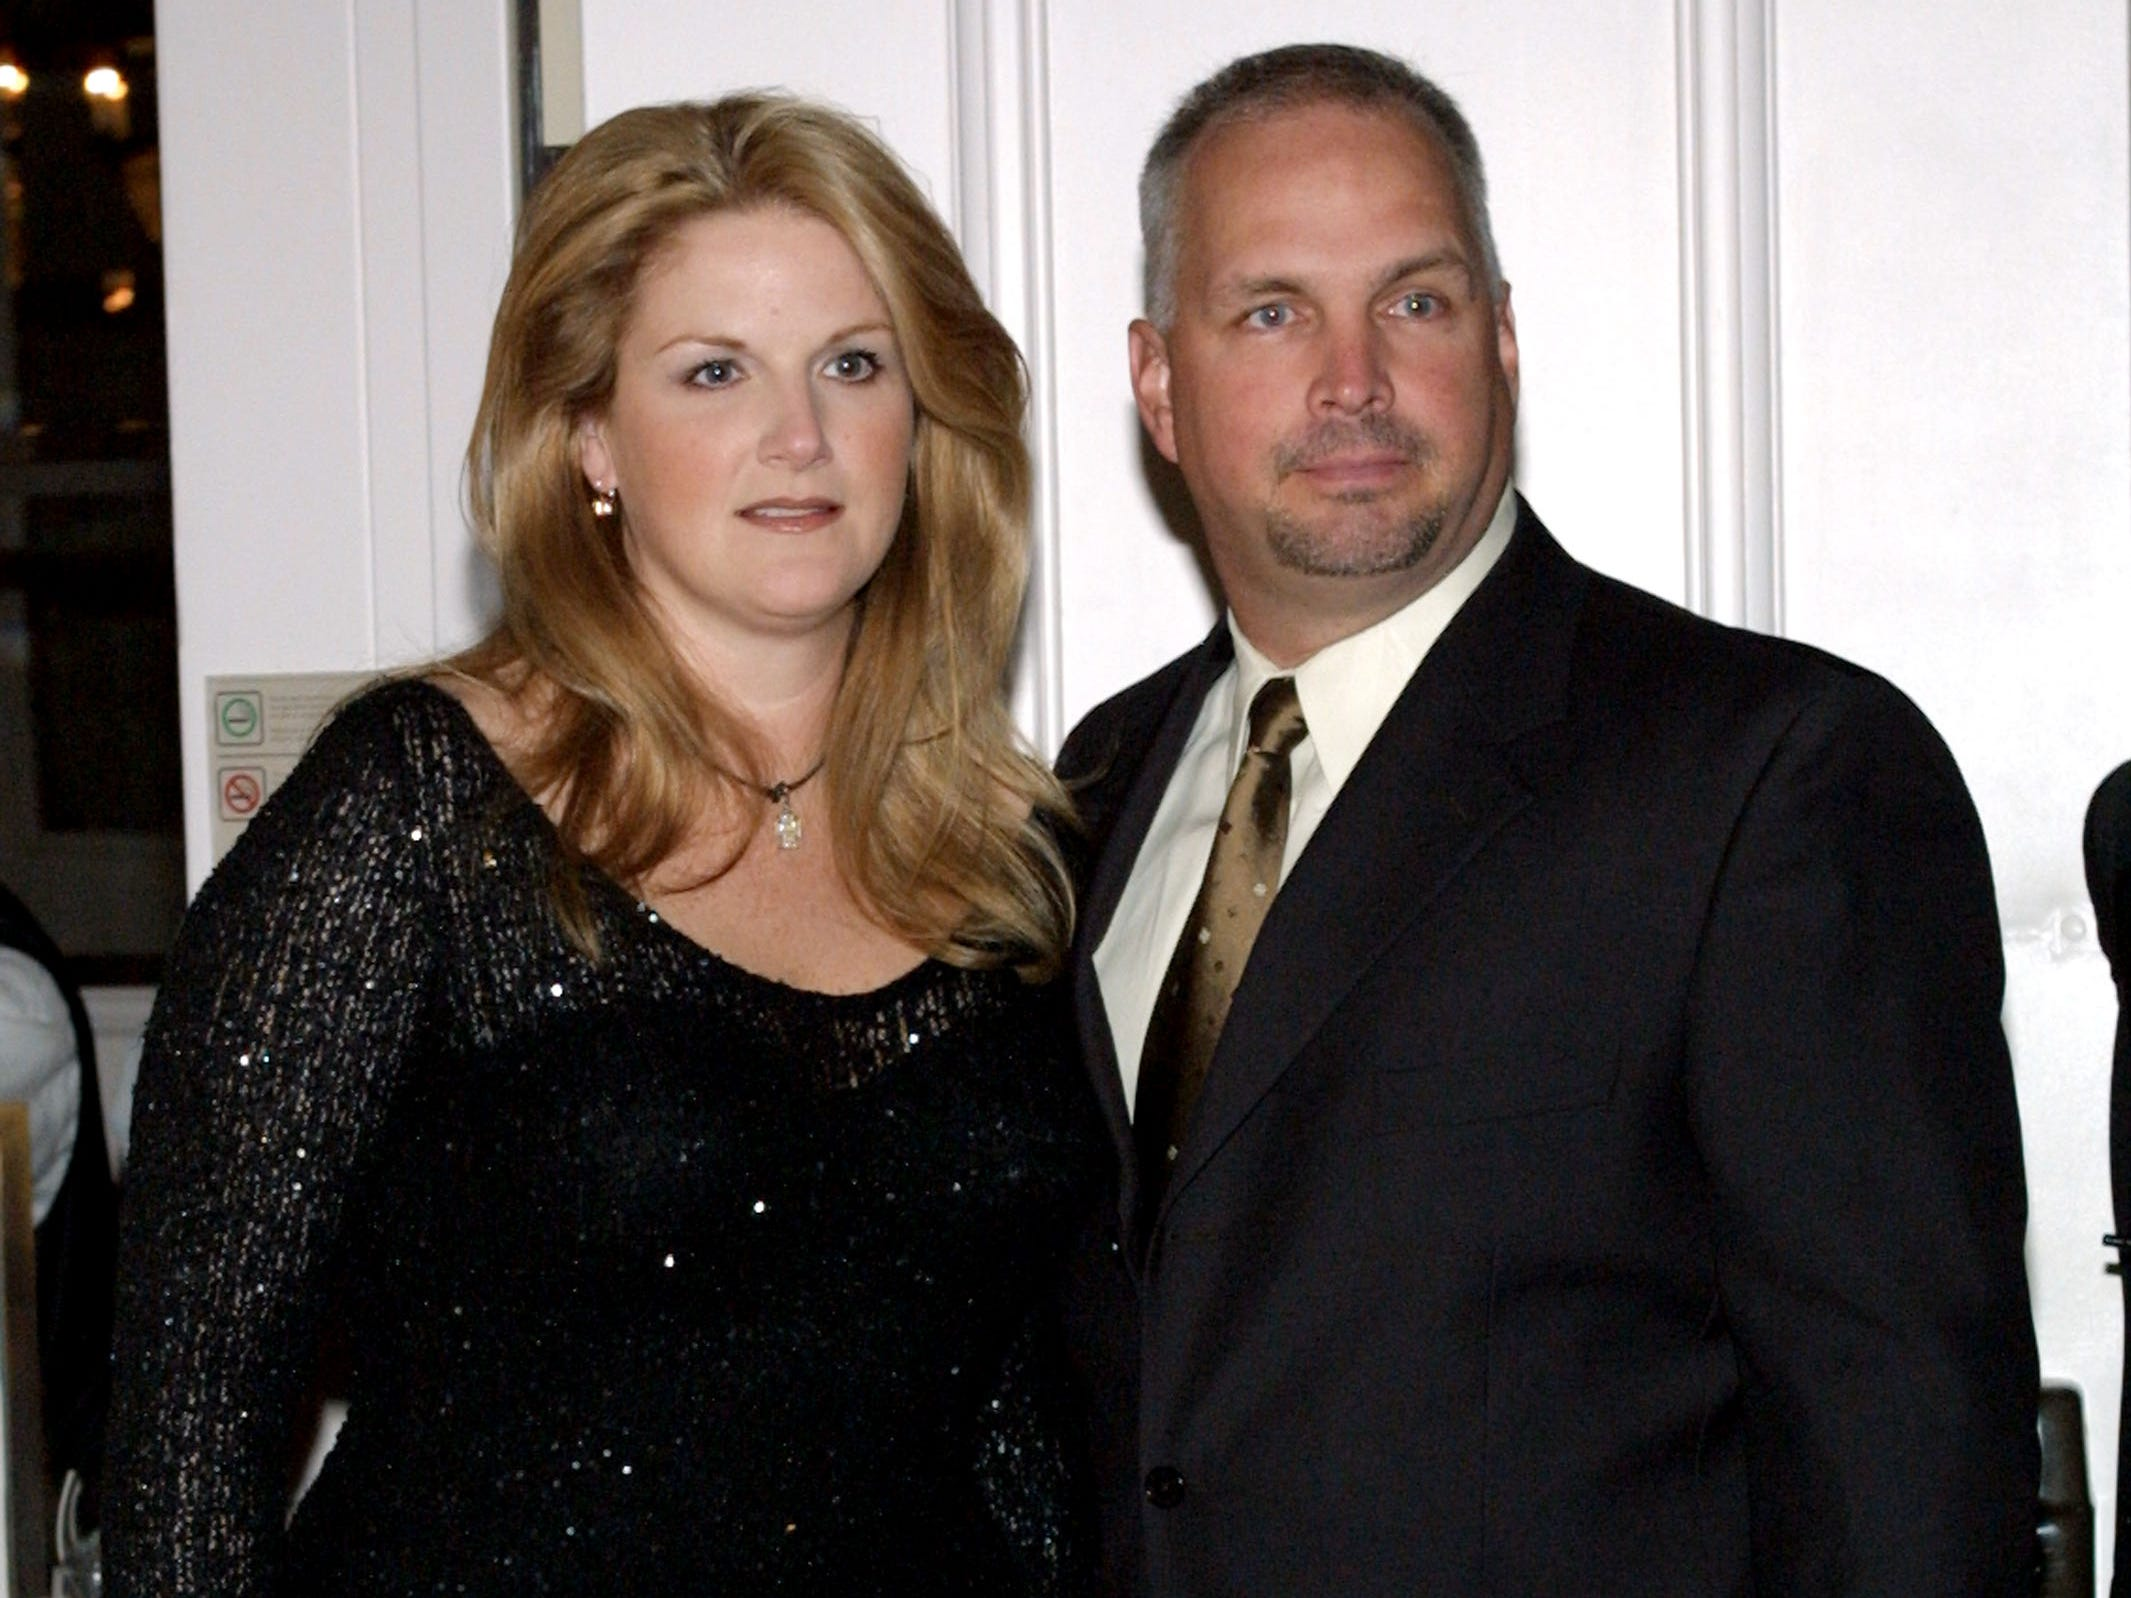 Garth Brooks and Trisha Yearwood attend the Gala Event Honoring columnist Army Archerd's 50th year at Daily Variety April 26, 2002 in Beverly Hills, CA.